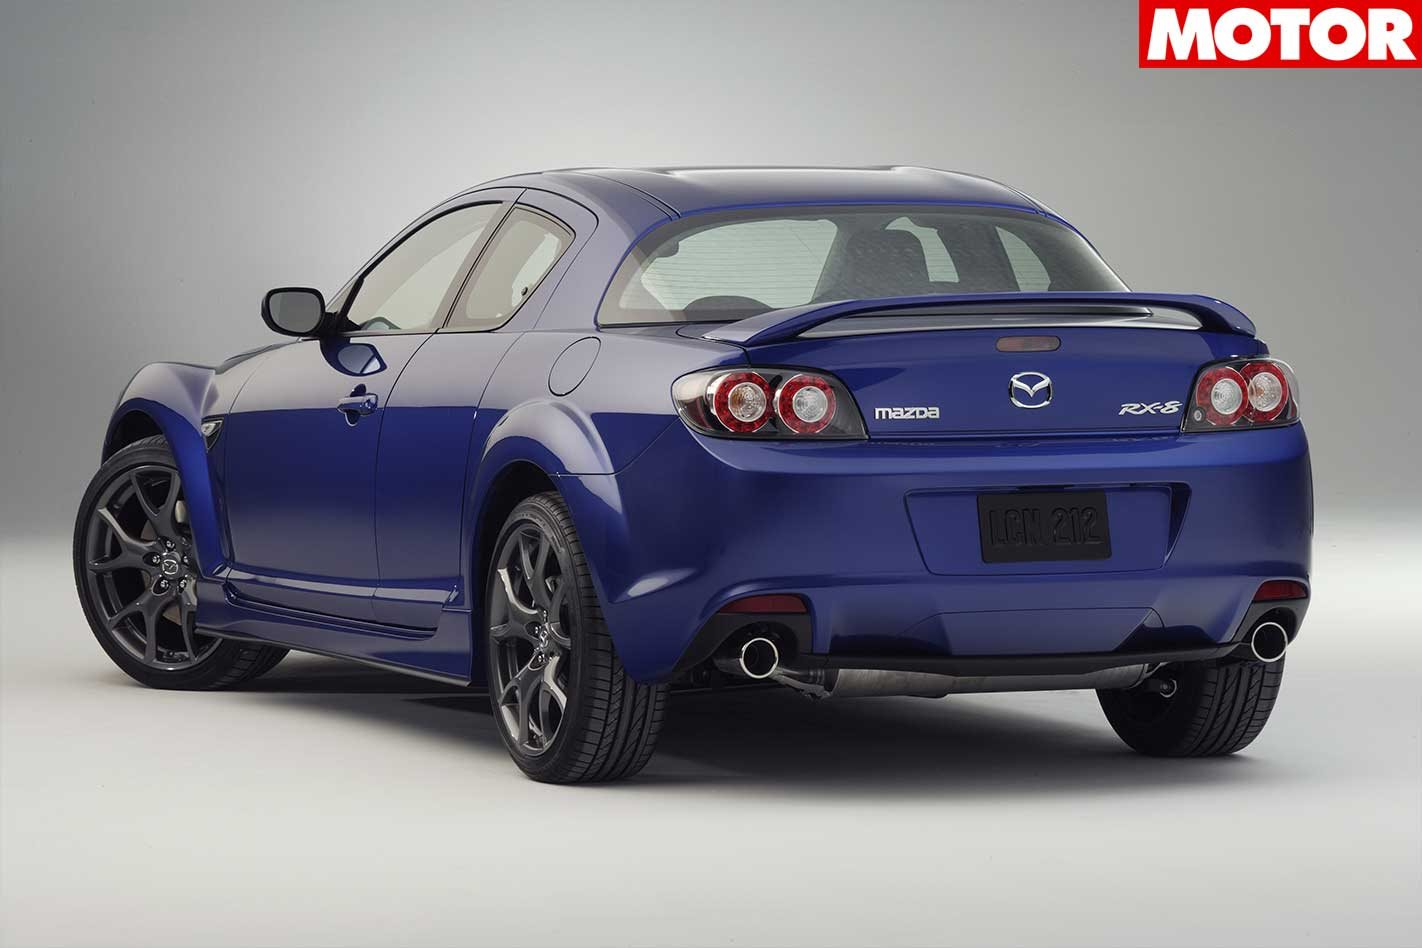 2008 Mazda RX-8 review: classic MOTOR